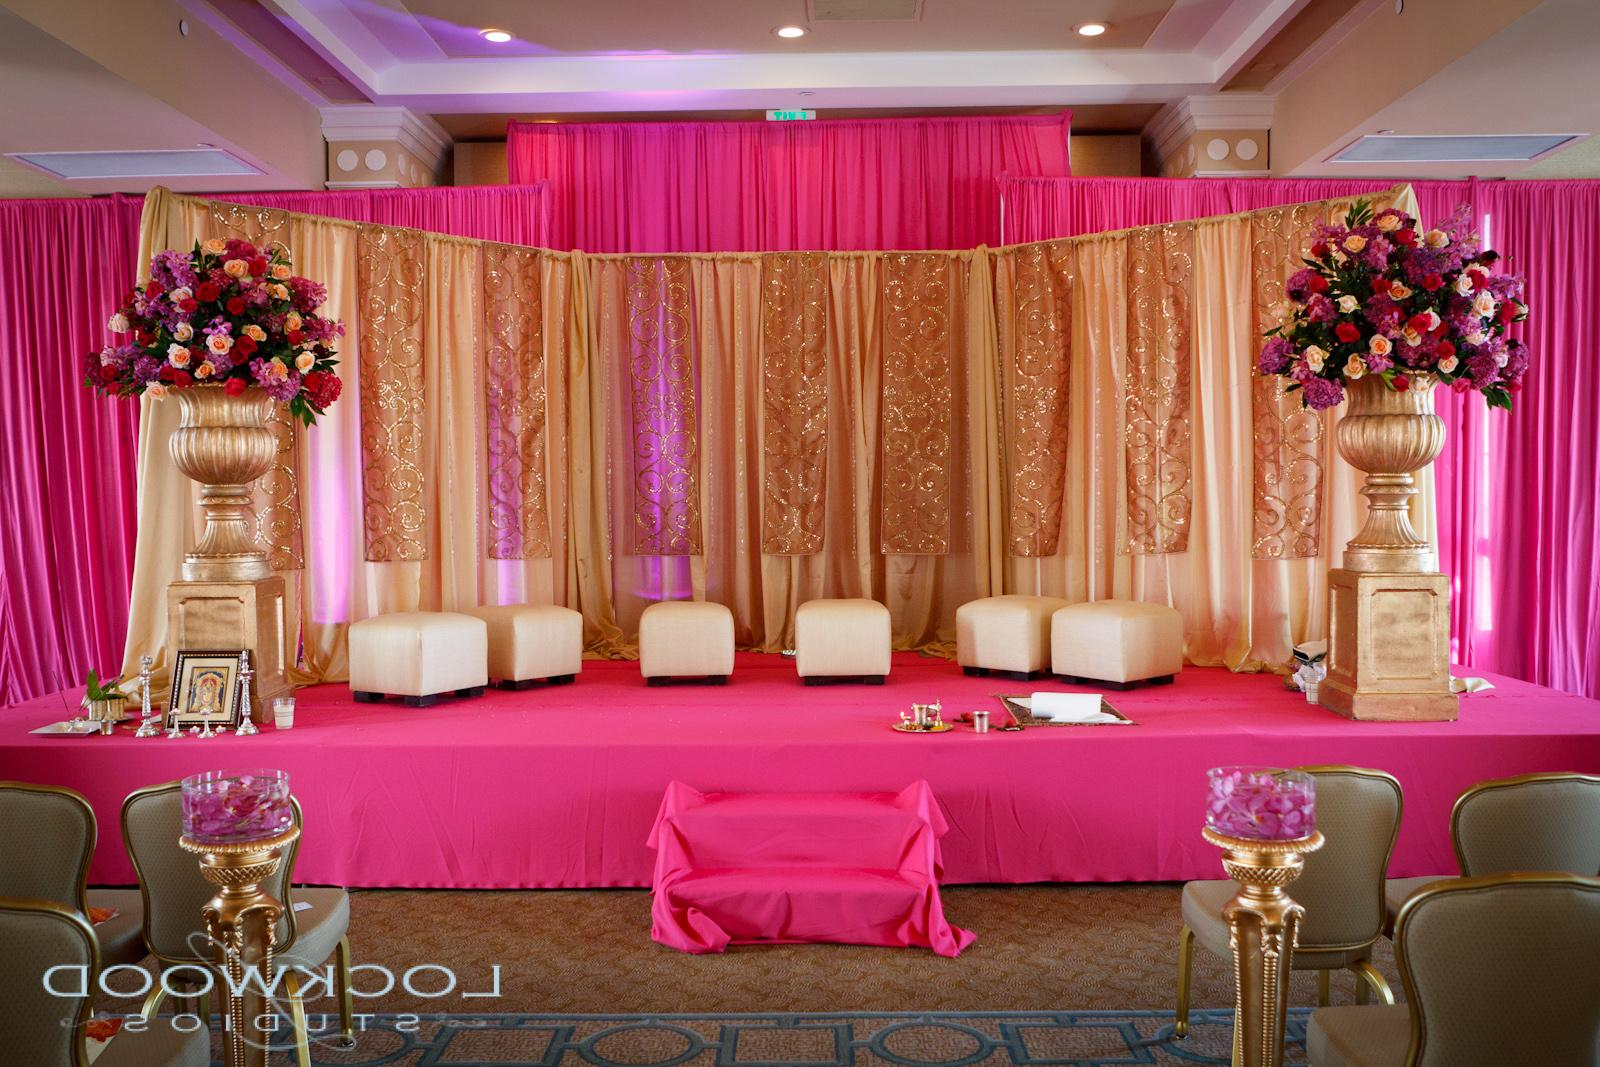 Christian Wedding Stage Decoration Pics : Christian hindu marriage wedding stage flower car decorations and